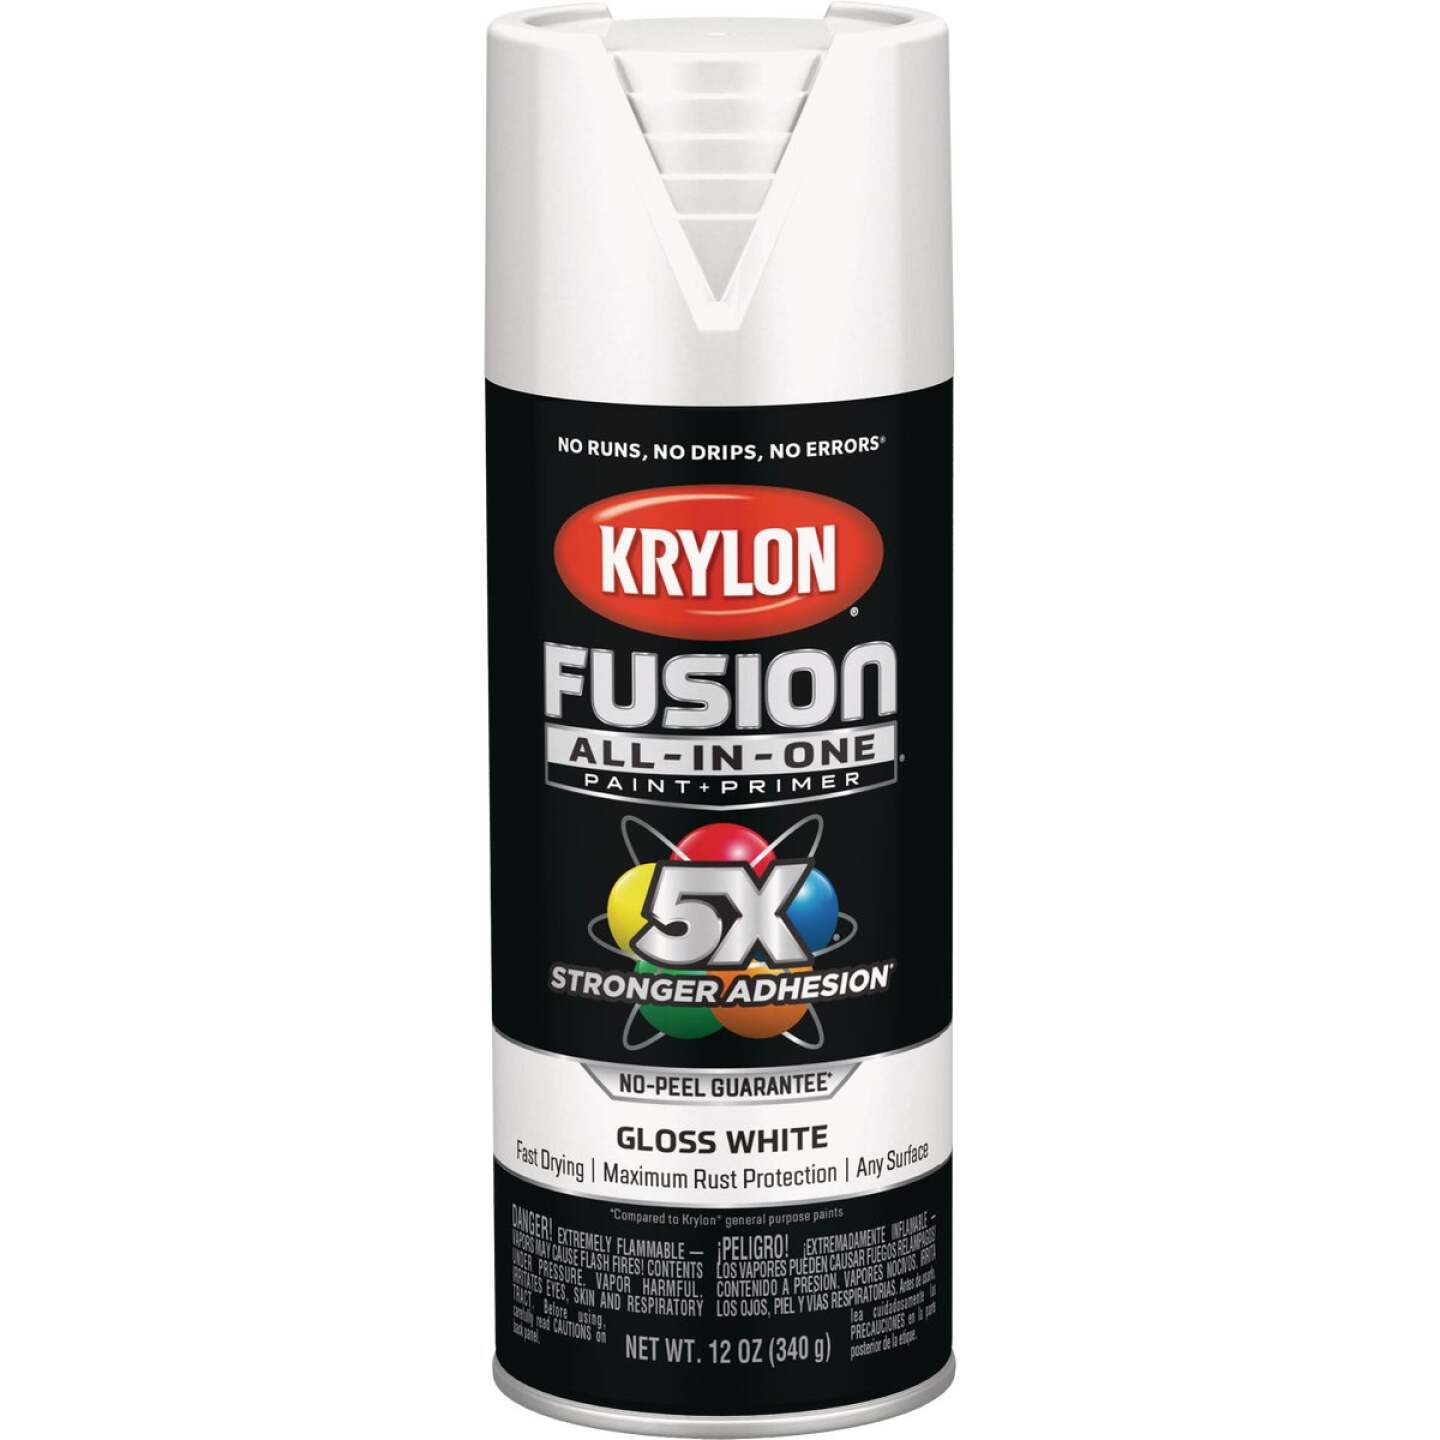 Krylon Fusion All-In-One Gloss Spray Paint & Primer, White Image 1